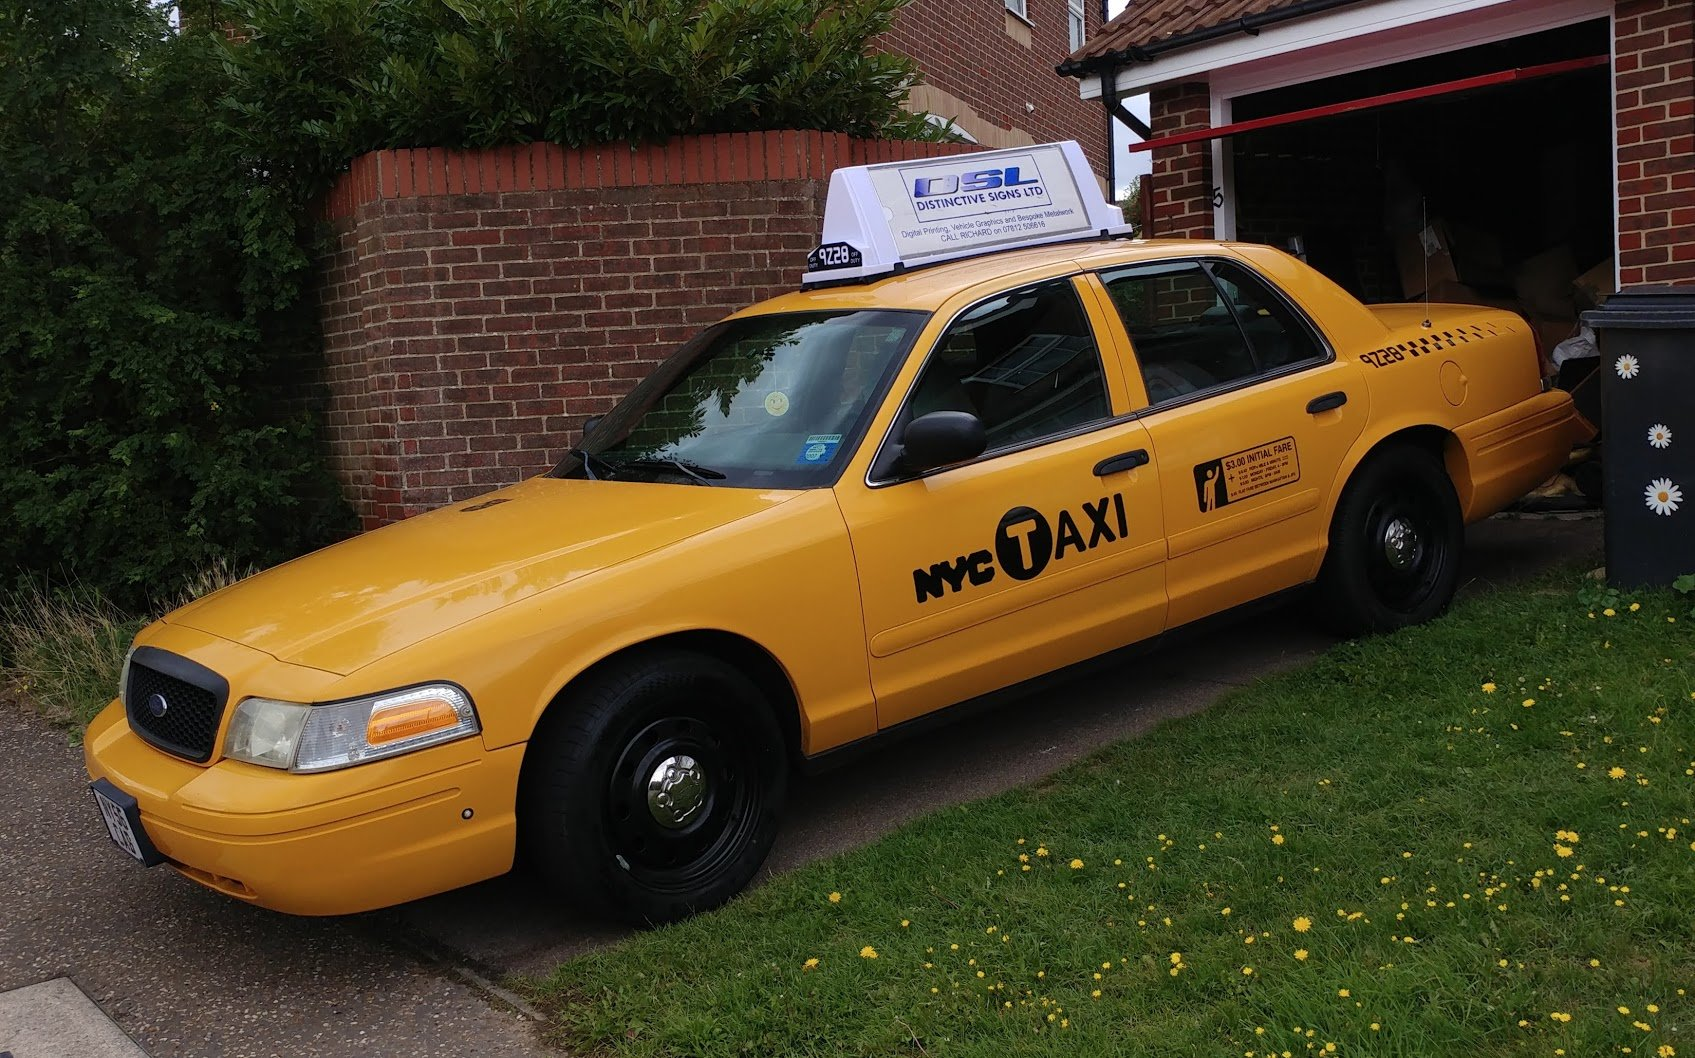 2007 Ford Crown Victoria New York taxi cab For Sale (picture 3 of 6)